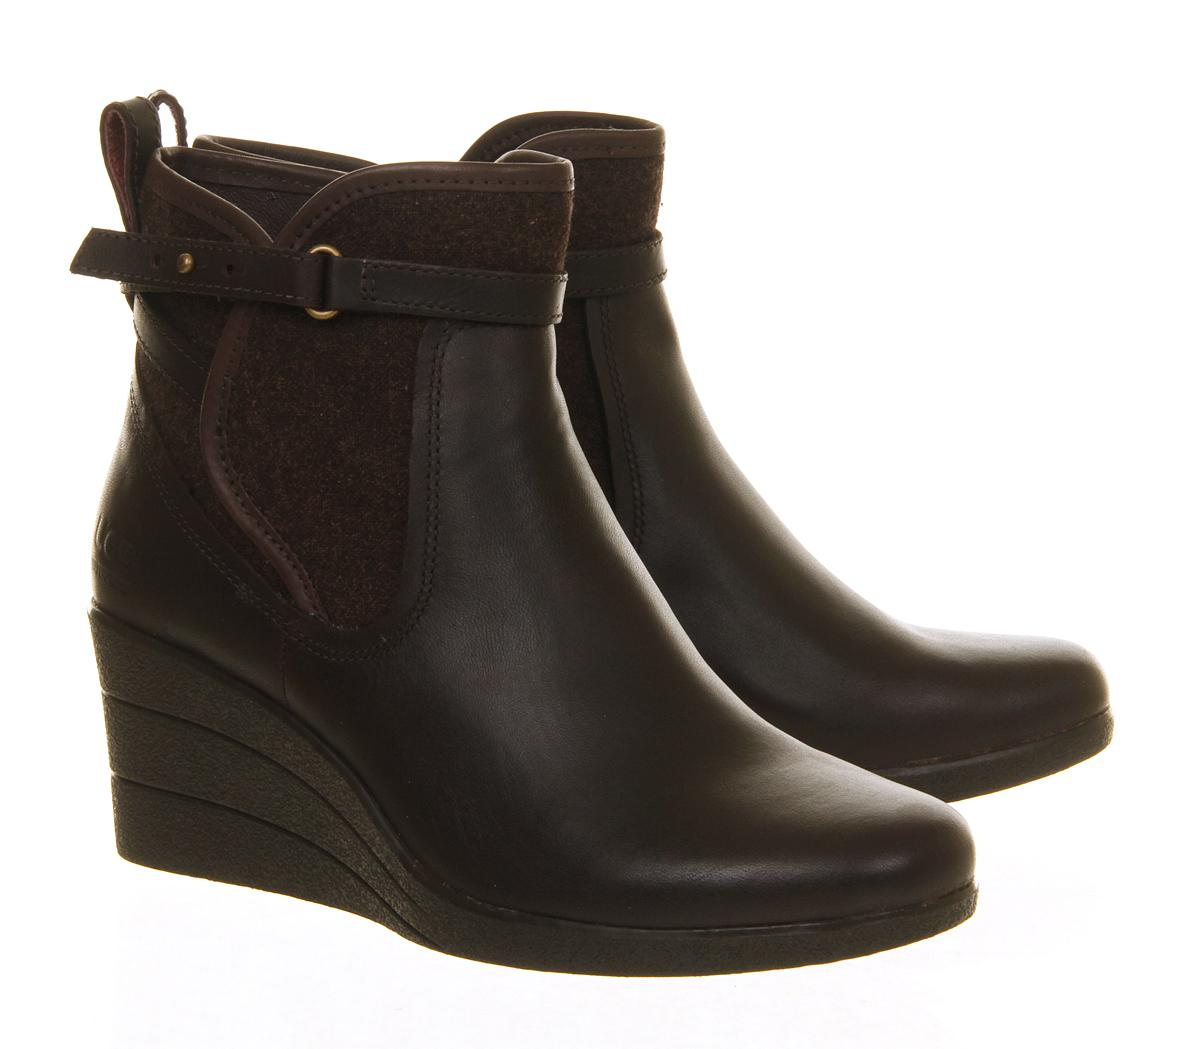 cb233cf2c92 Lyst - UGG Emalie Wedge Boots in Brown